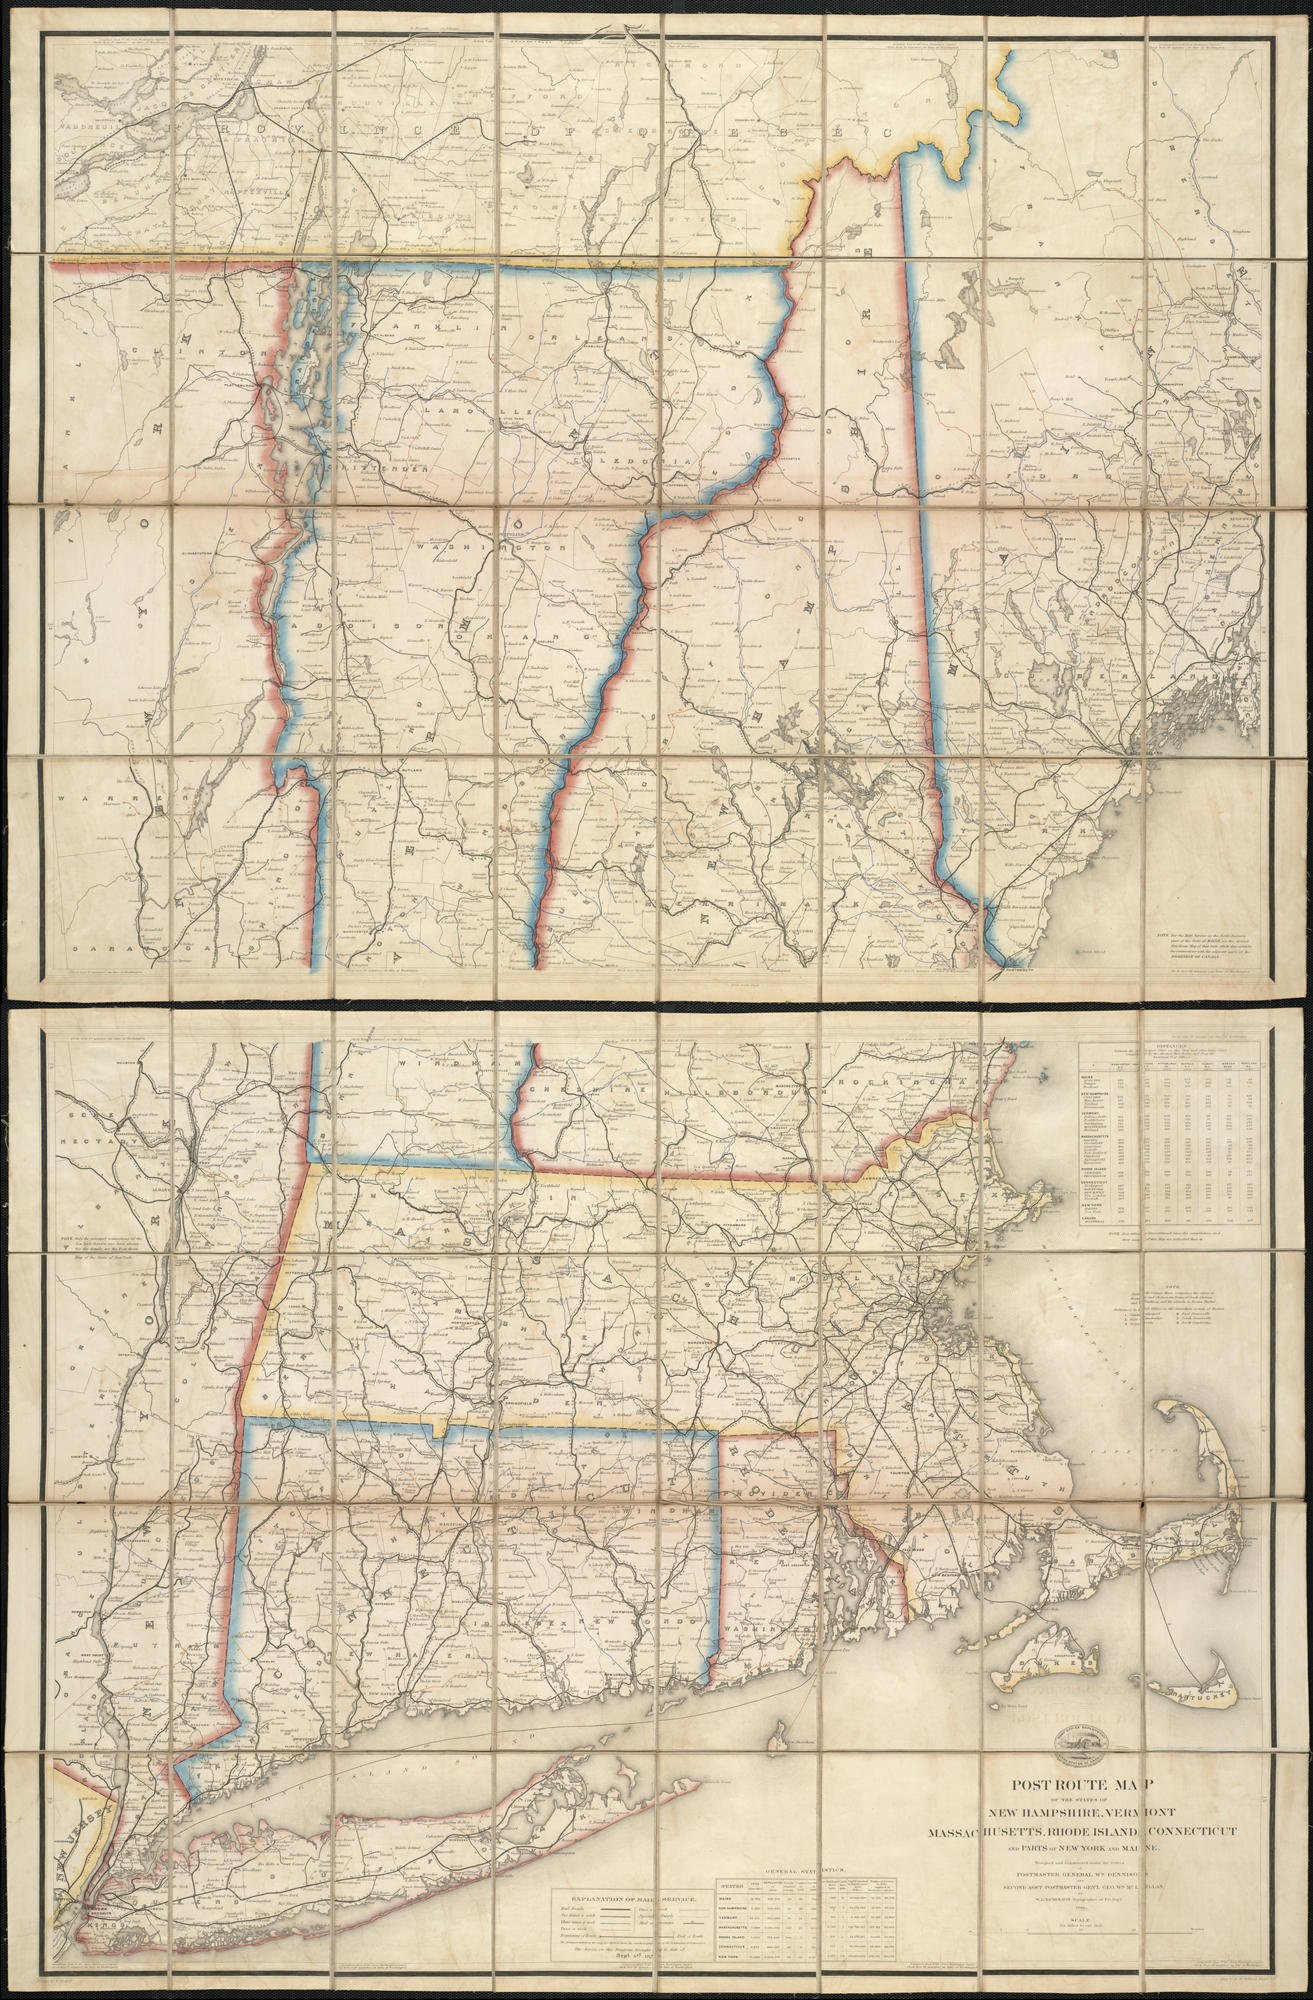 File:Post route map of the states of New Hampshire, Vermont ...